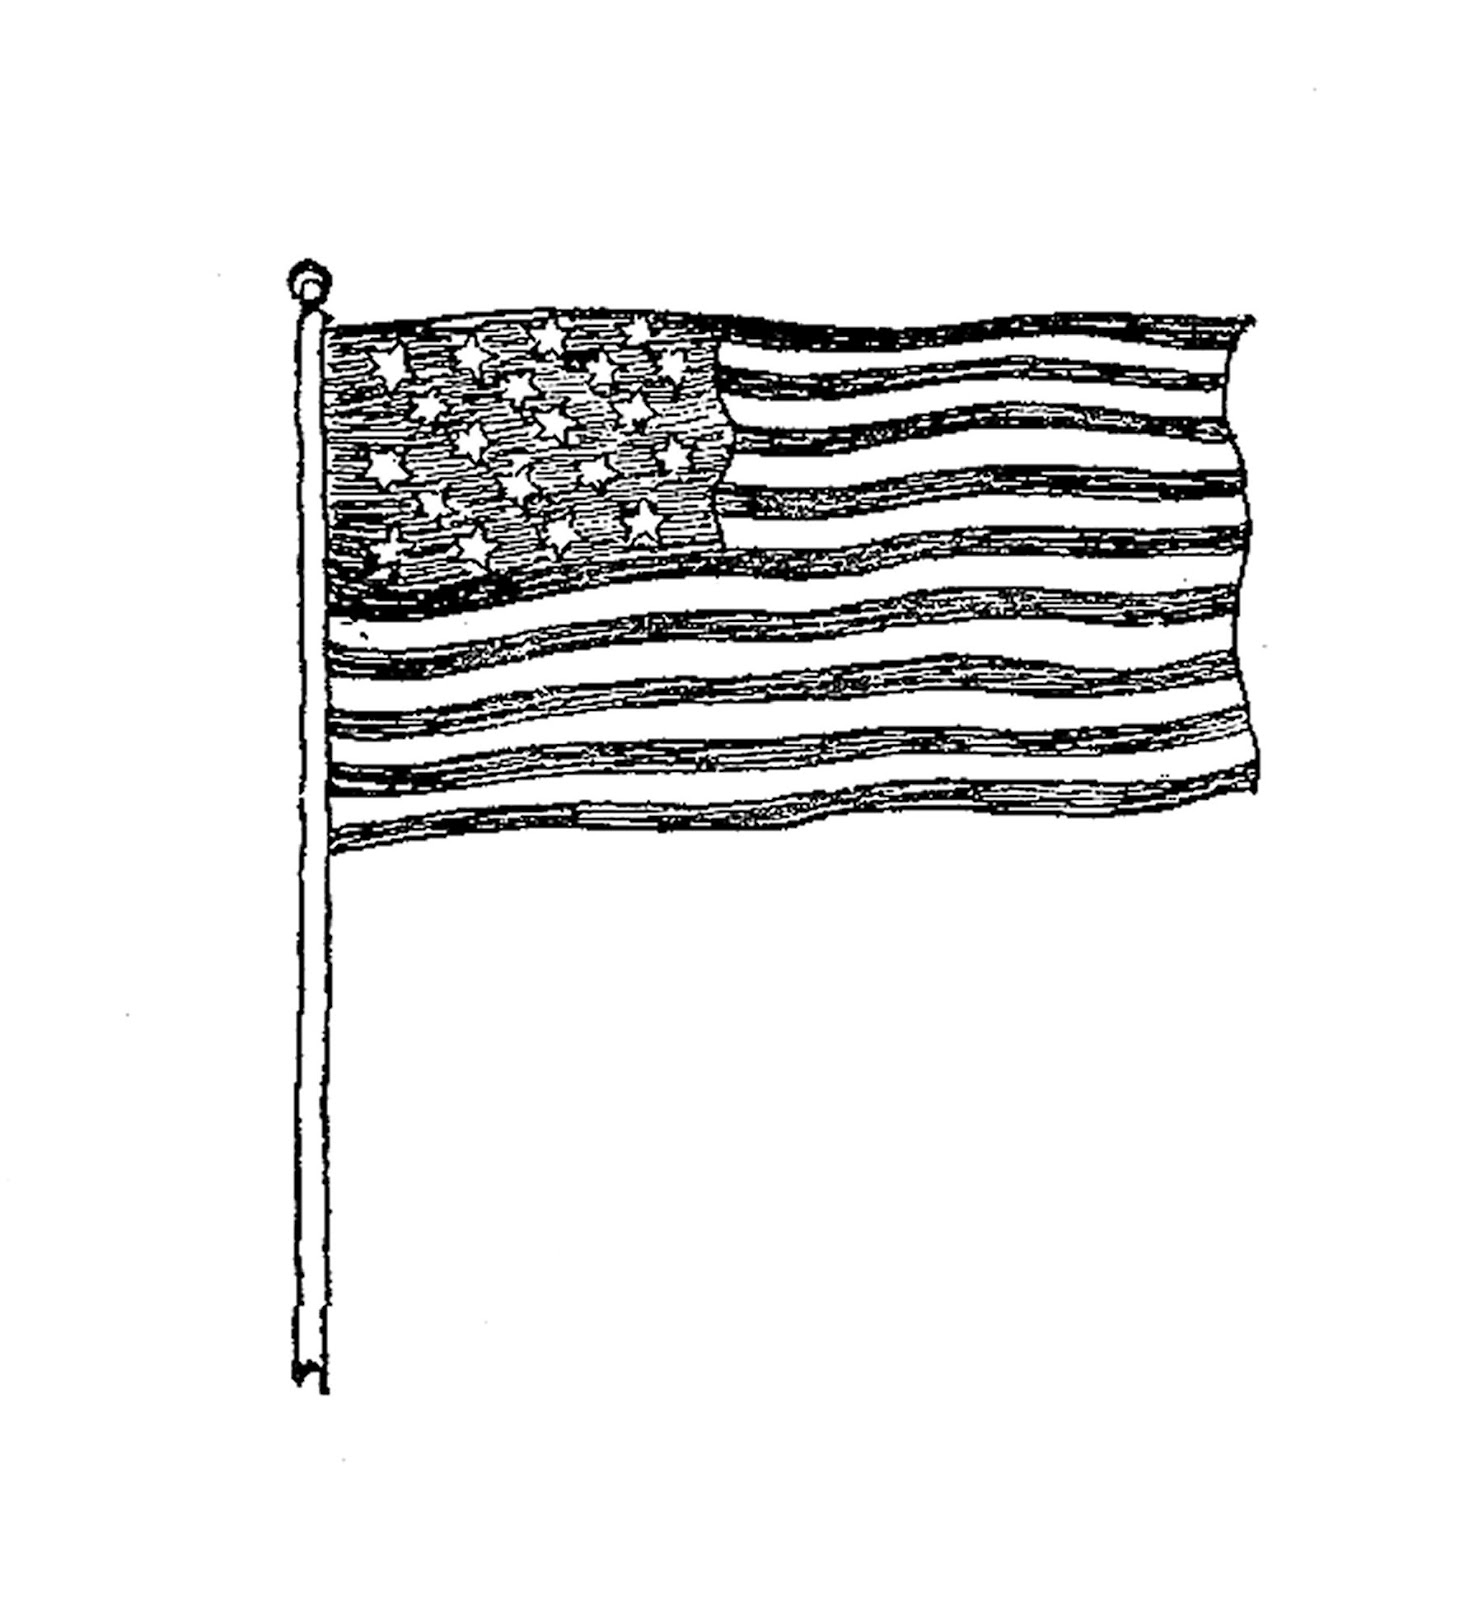 25 Jun 2008   Vintage American Flag Clip Art Black And White